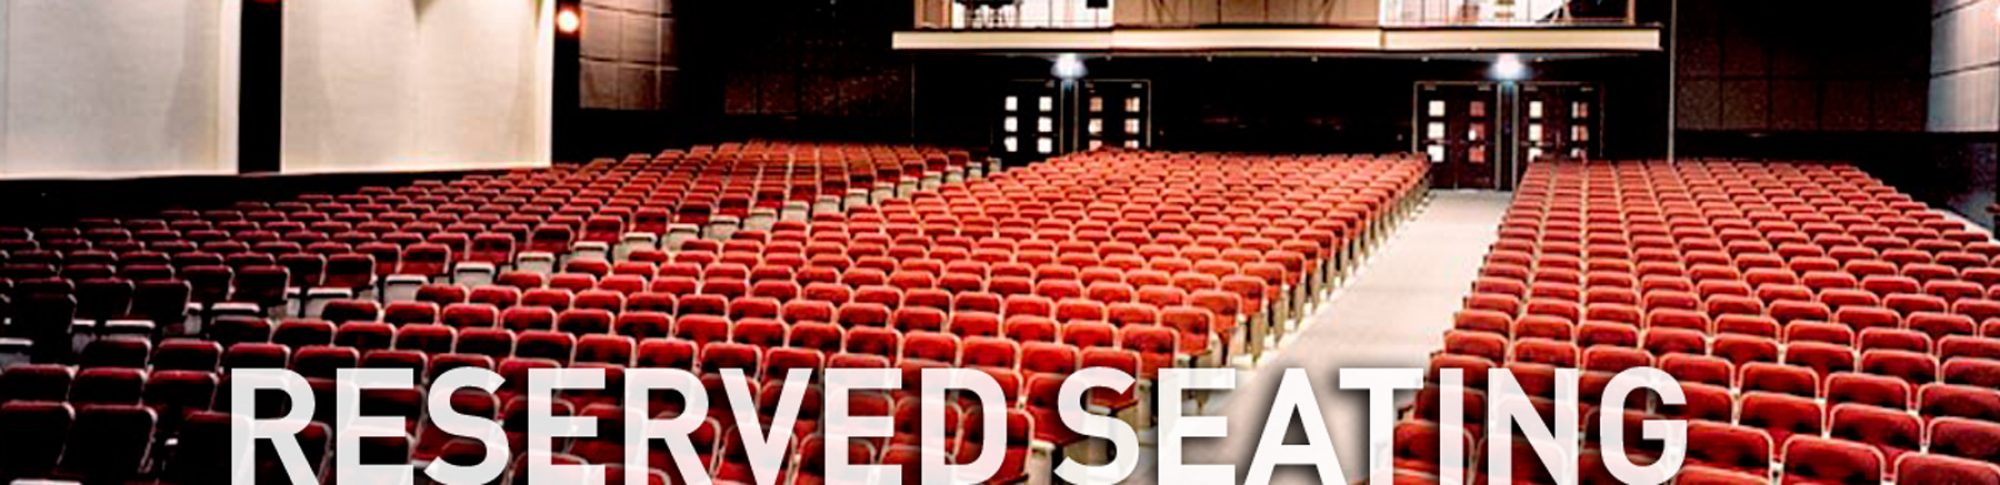 featured_image_reservedseating